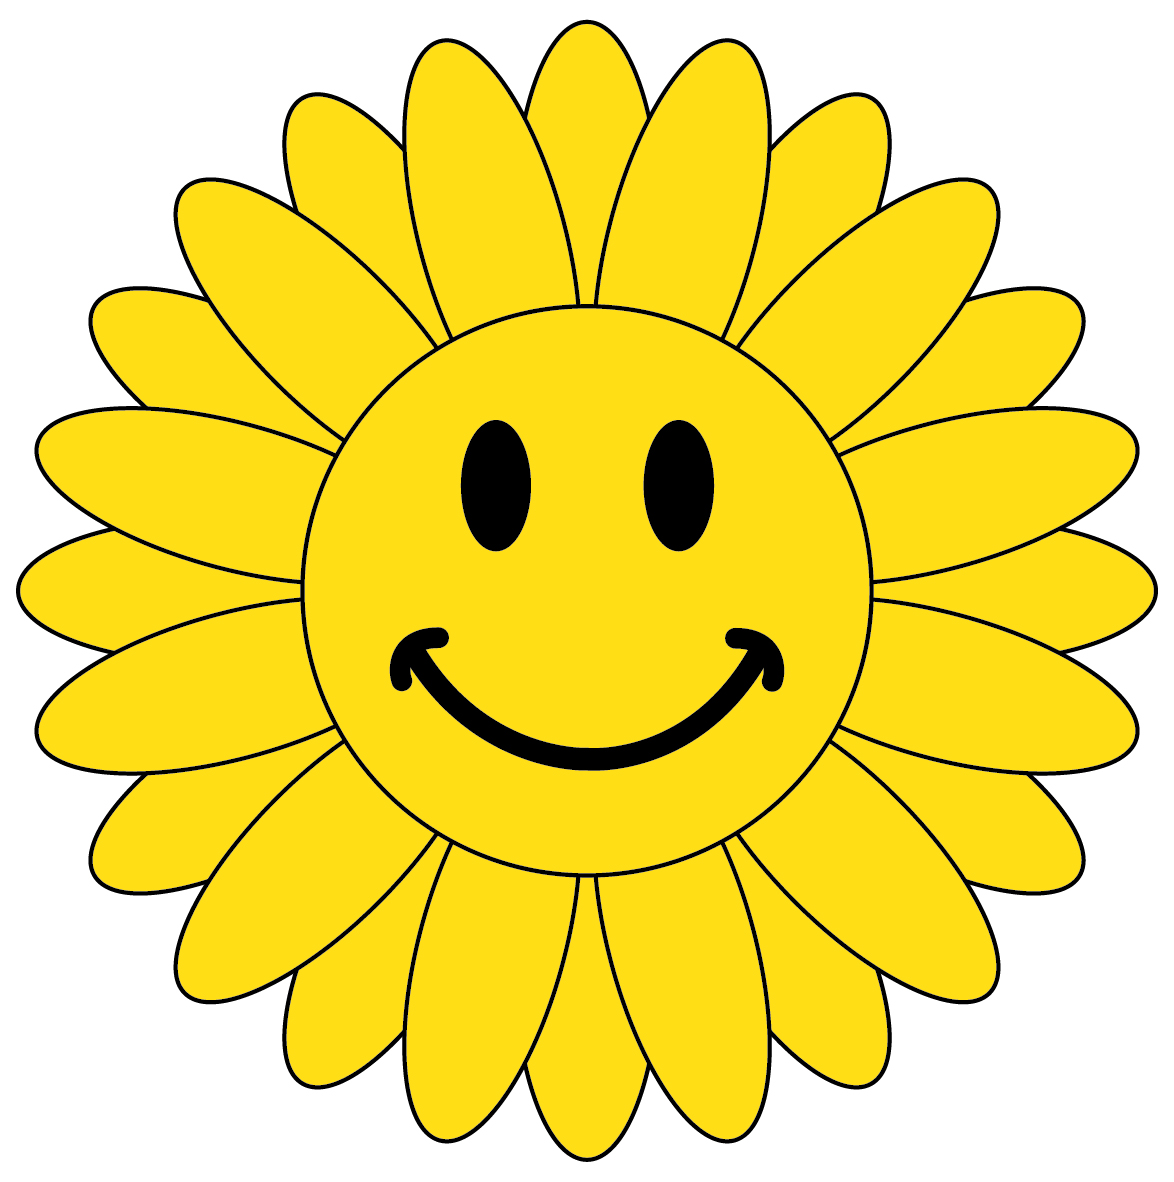 1174x1182 Happy Face Laughing Smiley Clip Art Free Clipart Images 2